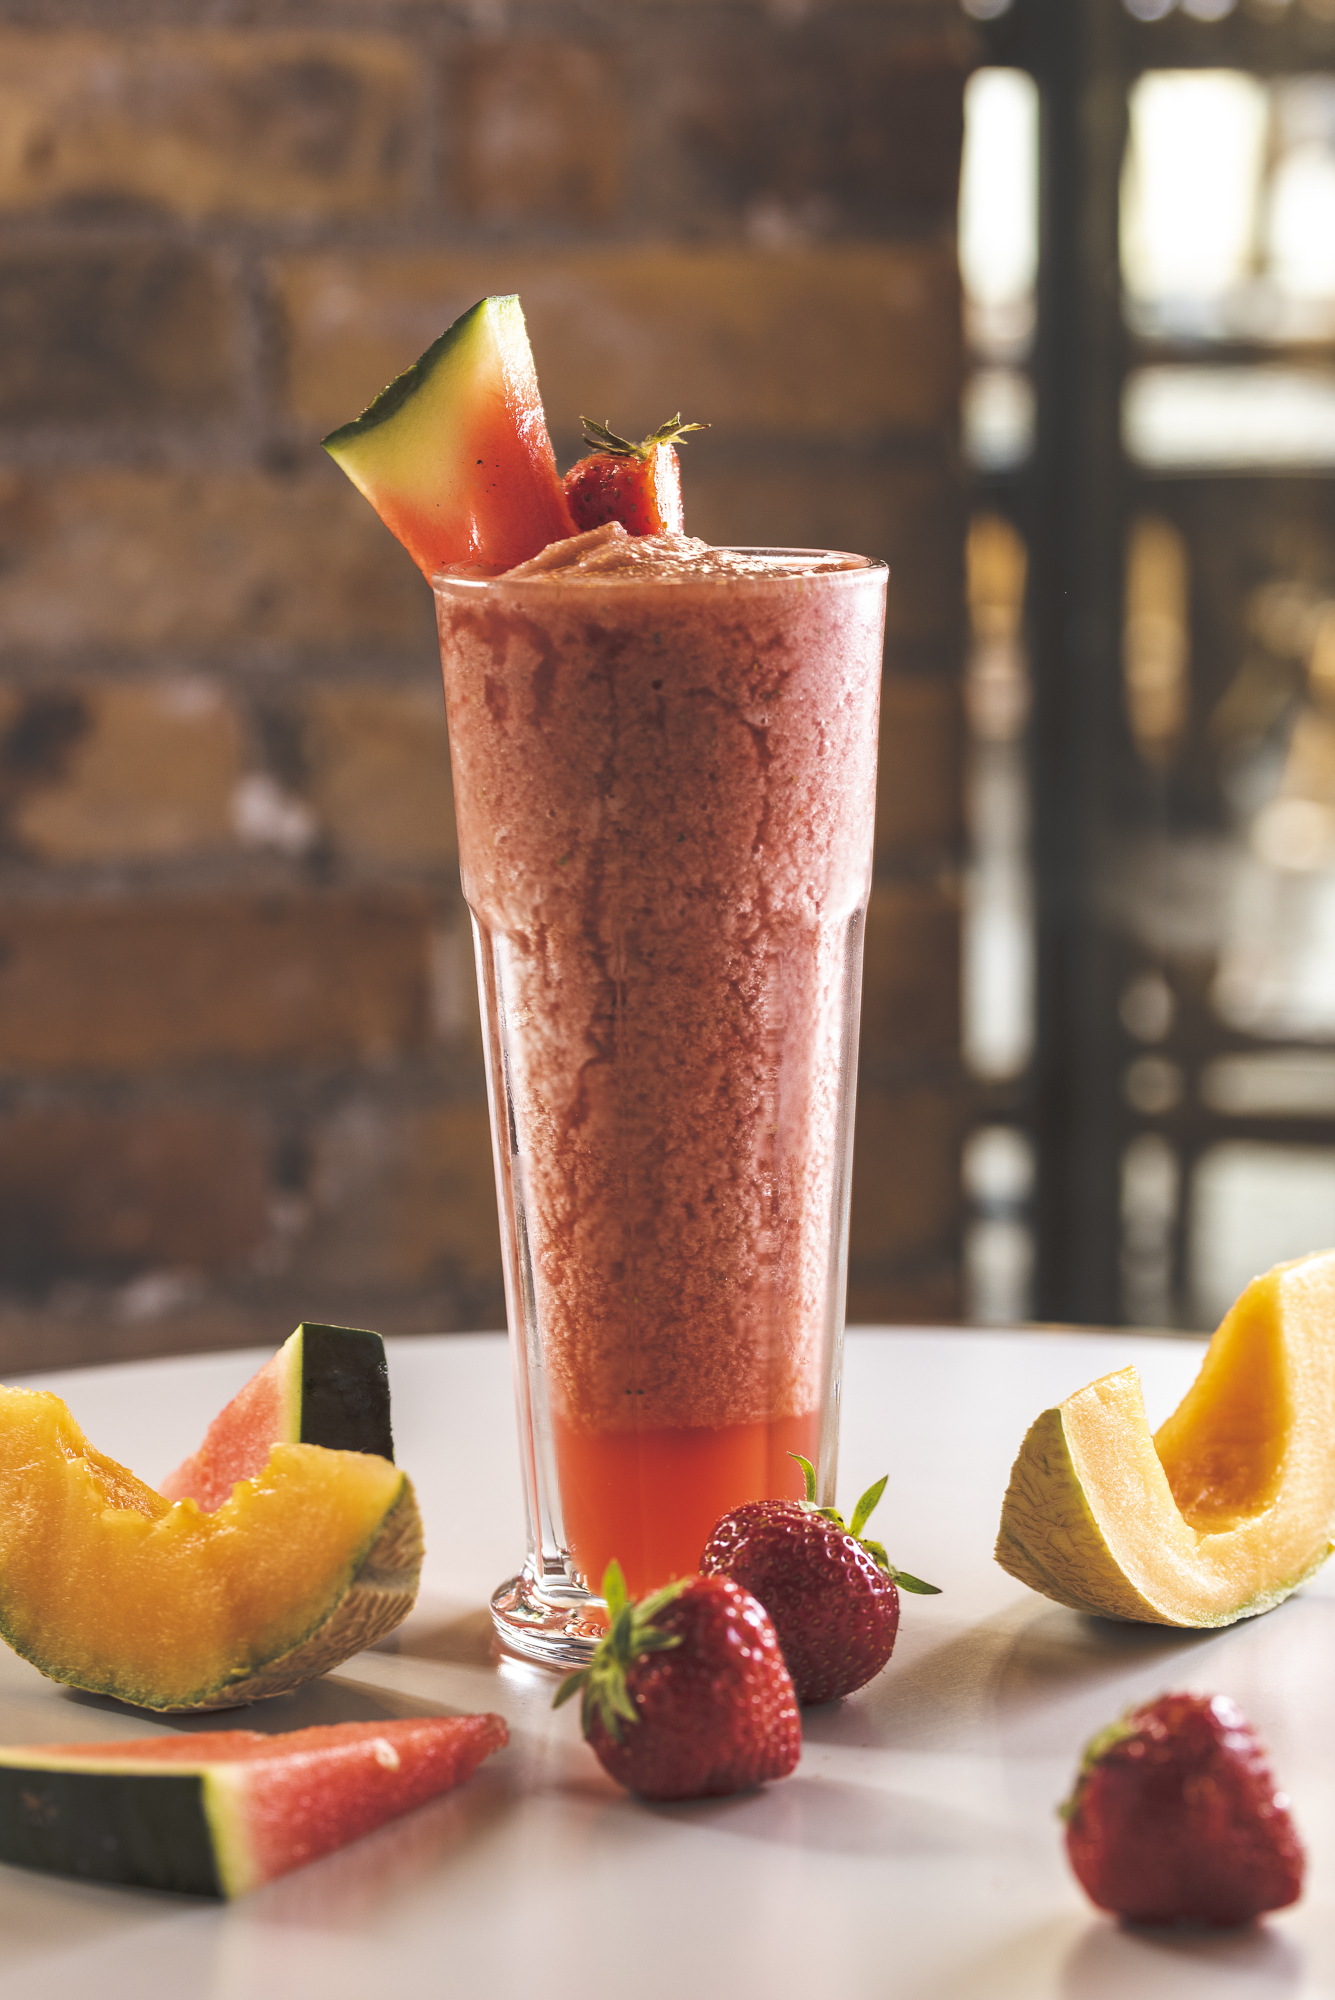 La-Maison-Montmorency_Carte_ete_2018_Smoothie_Melon_Pasteque_Fraise